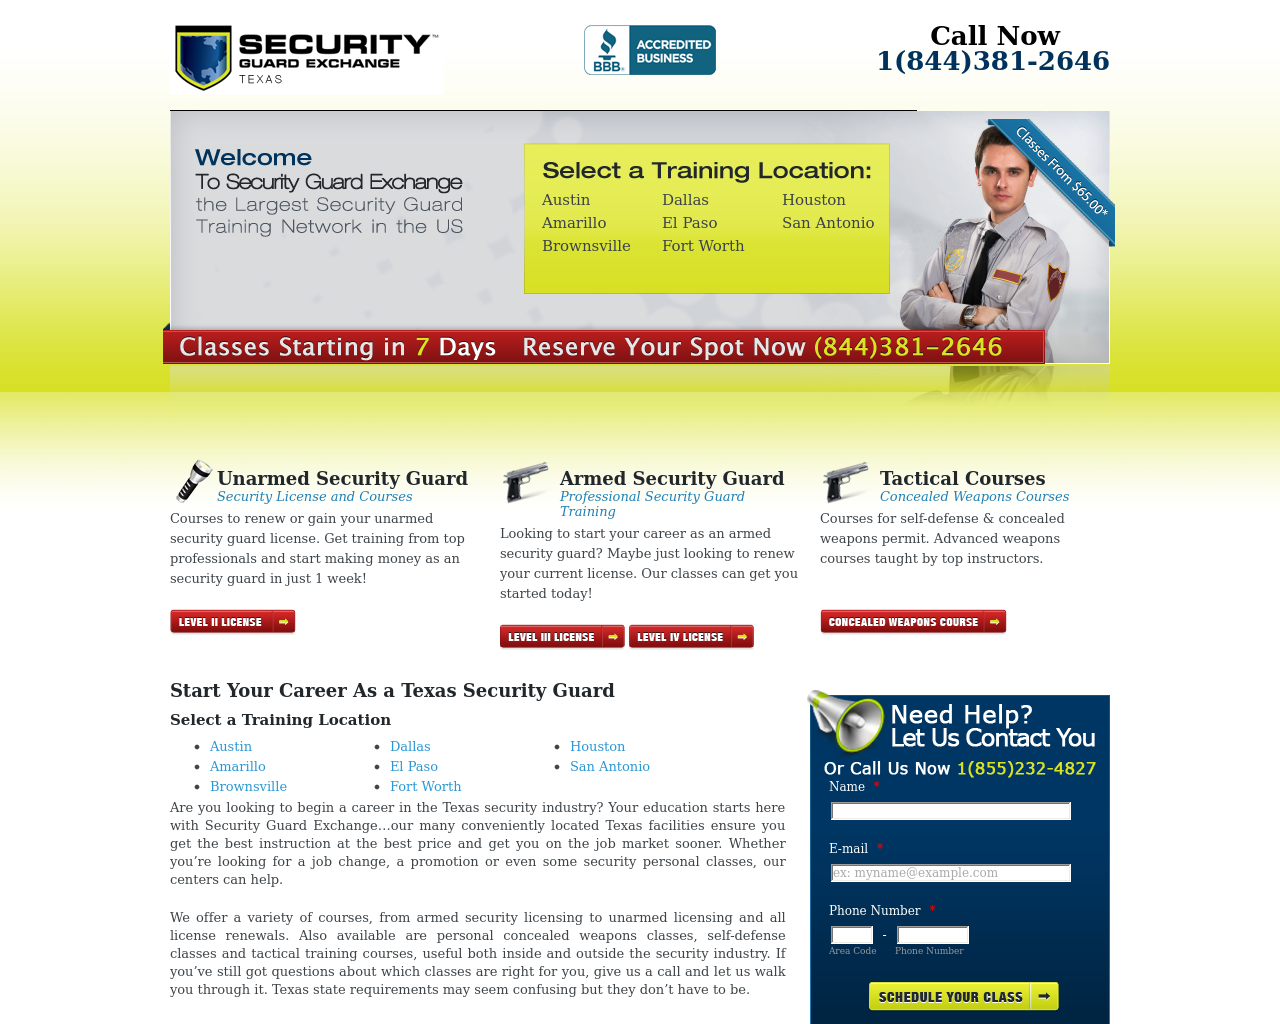 Security-Guard-Exchange-Advertising-Reviews-Pricing